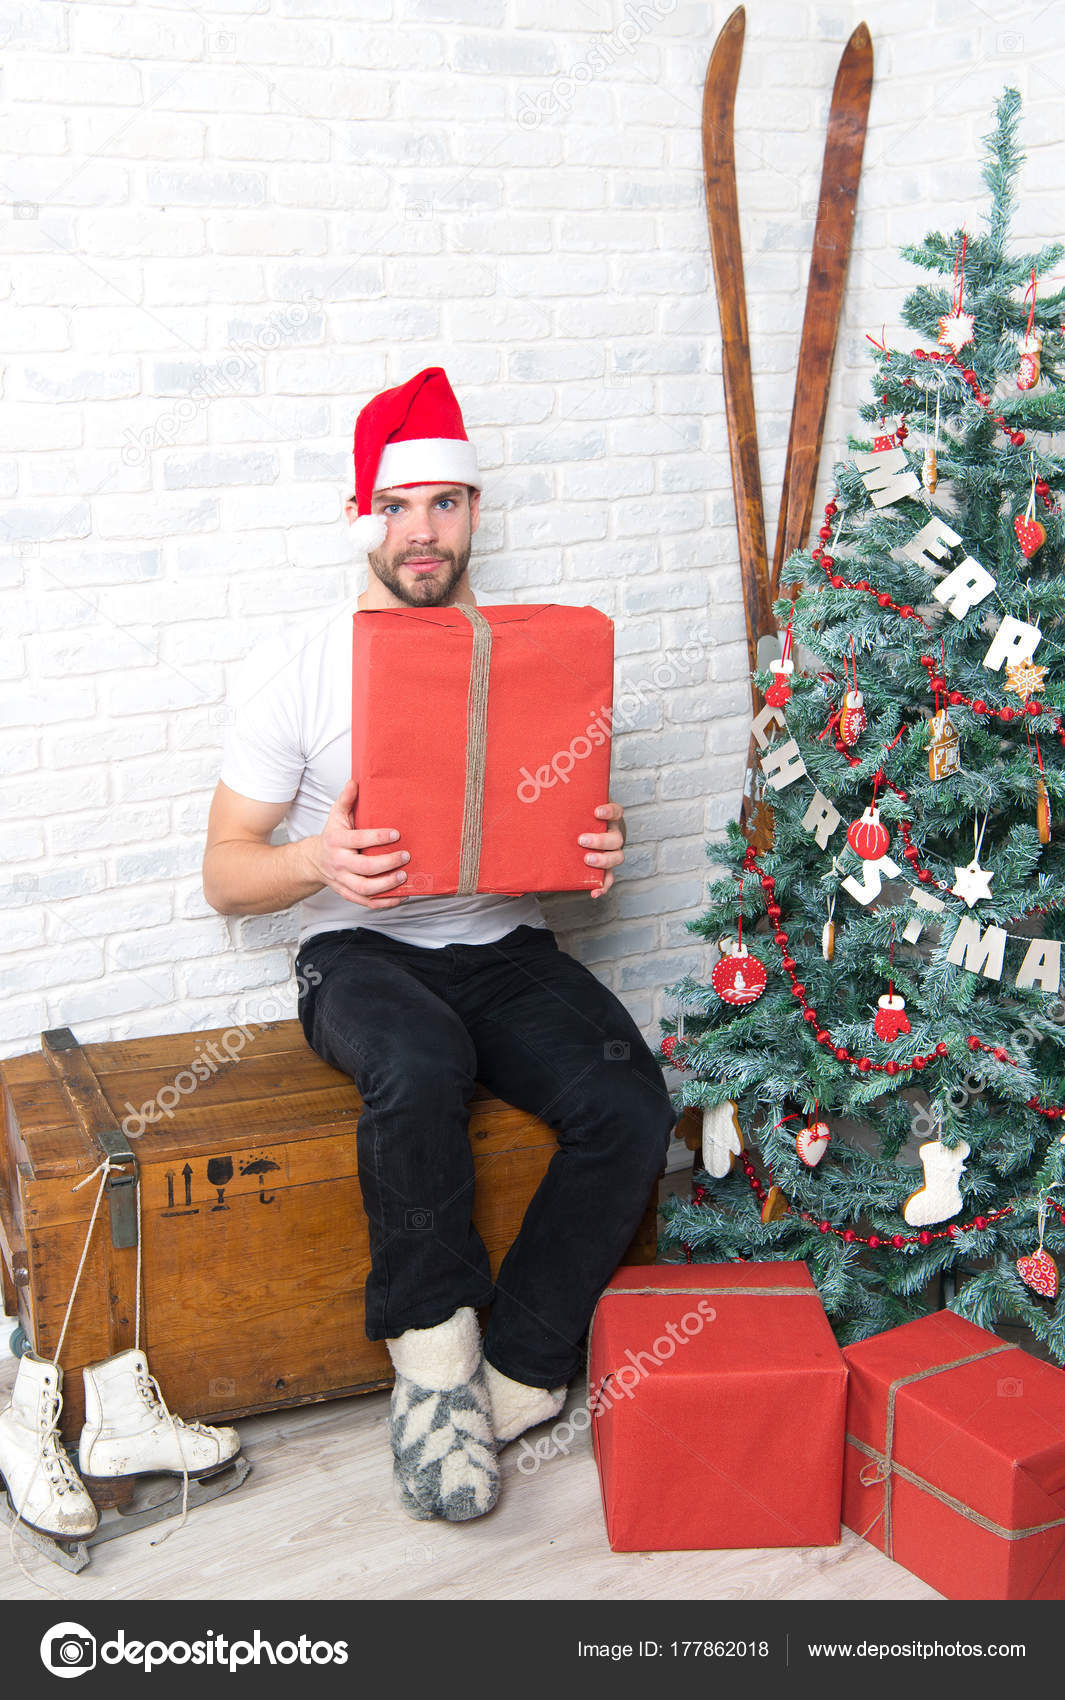 a6ae6563a1538 Macho in red hat hold wrapped present. Gift giving and exchange. Man santa  with boxes at christmas tree. Boxing day concept.